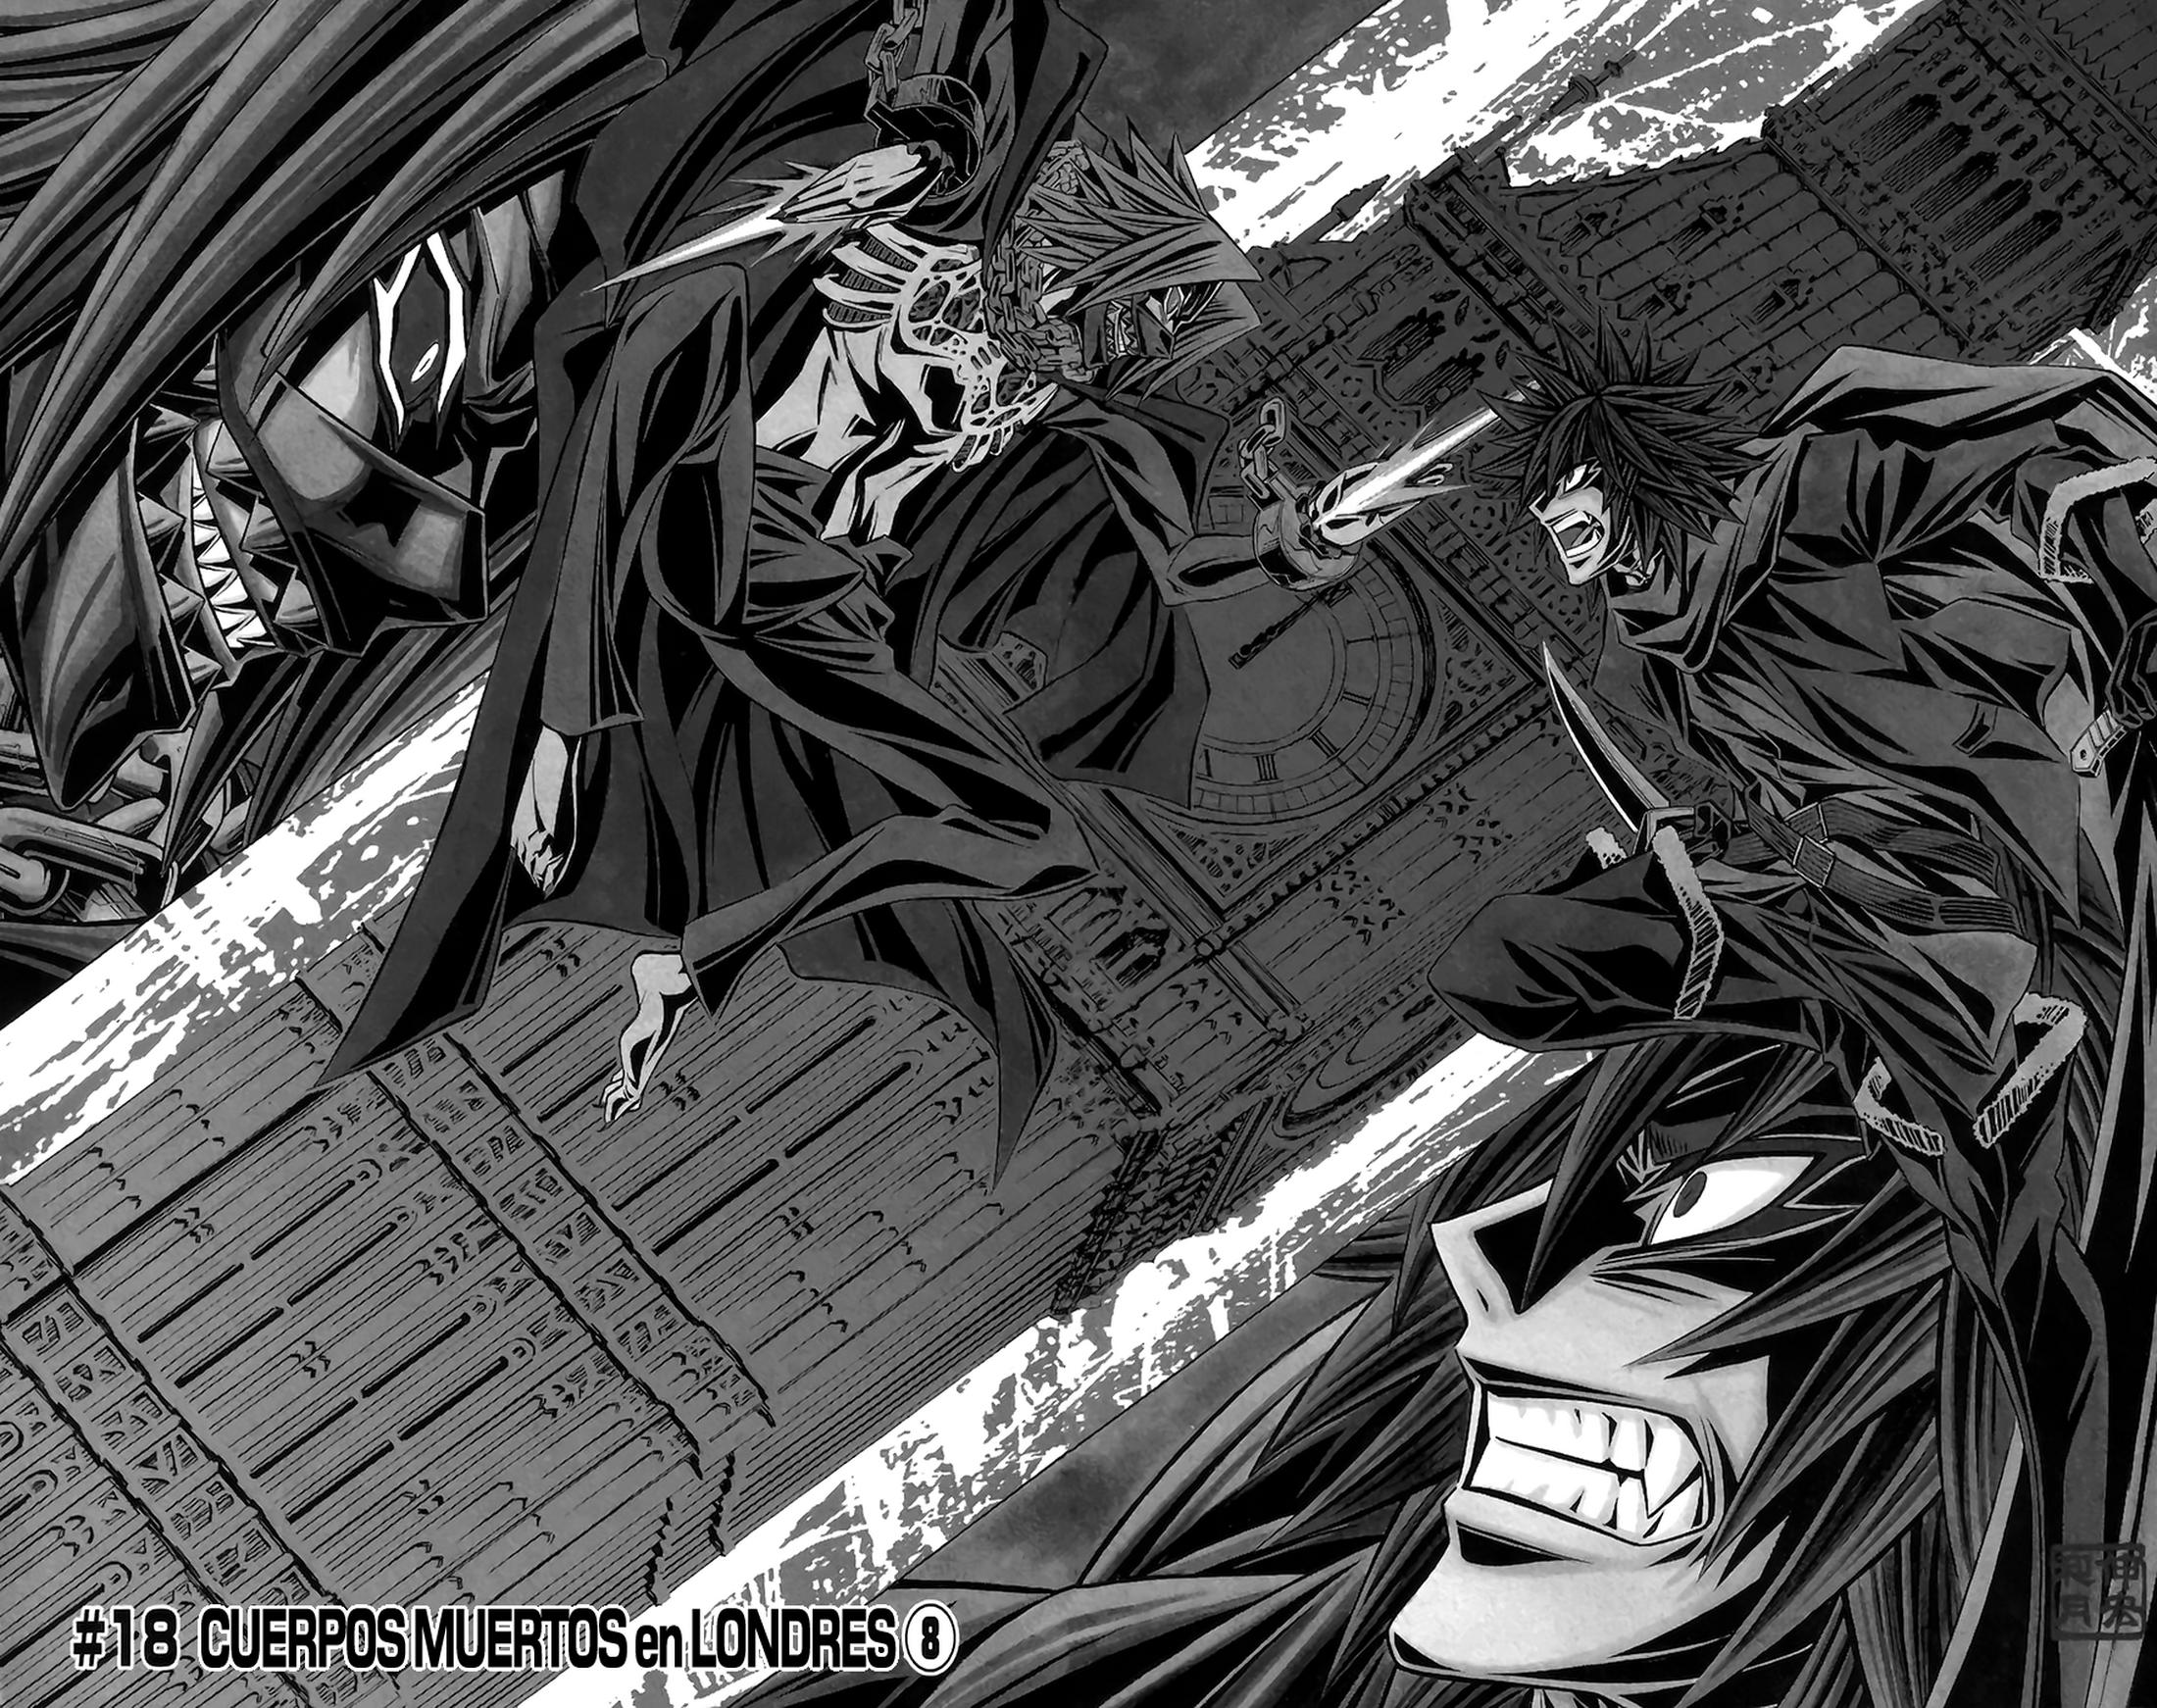 http://c5.ninemanga.com/es_manga/45/18797/447910/4f6195f5b77bb9a6c1c9295039383e87.jpg Page 2